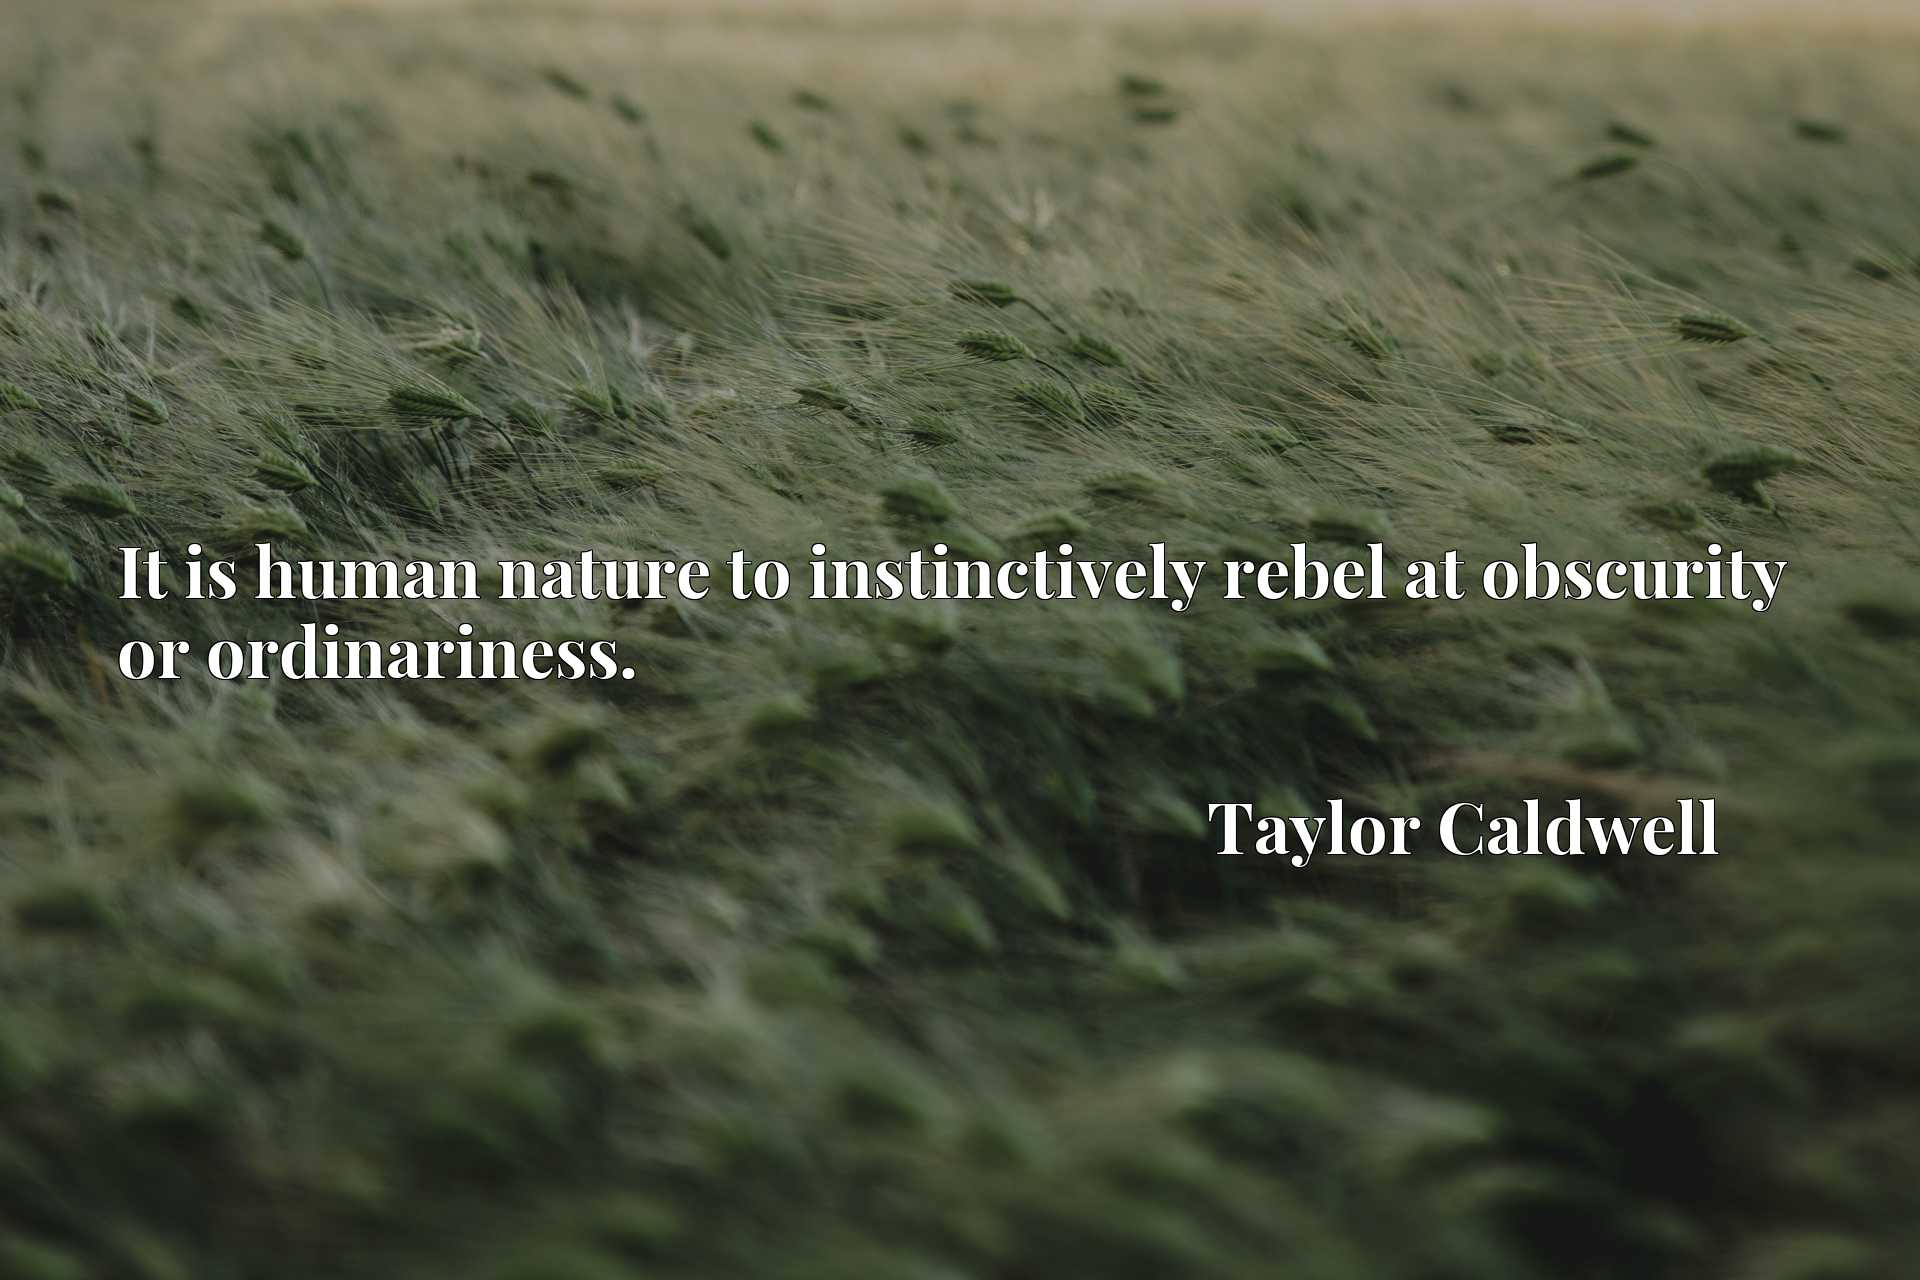 Quote Picture :It is human nature to instinctively rebel at obscurity or ordinariness.